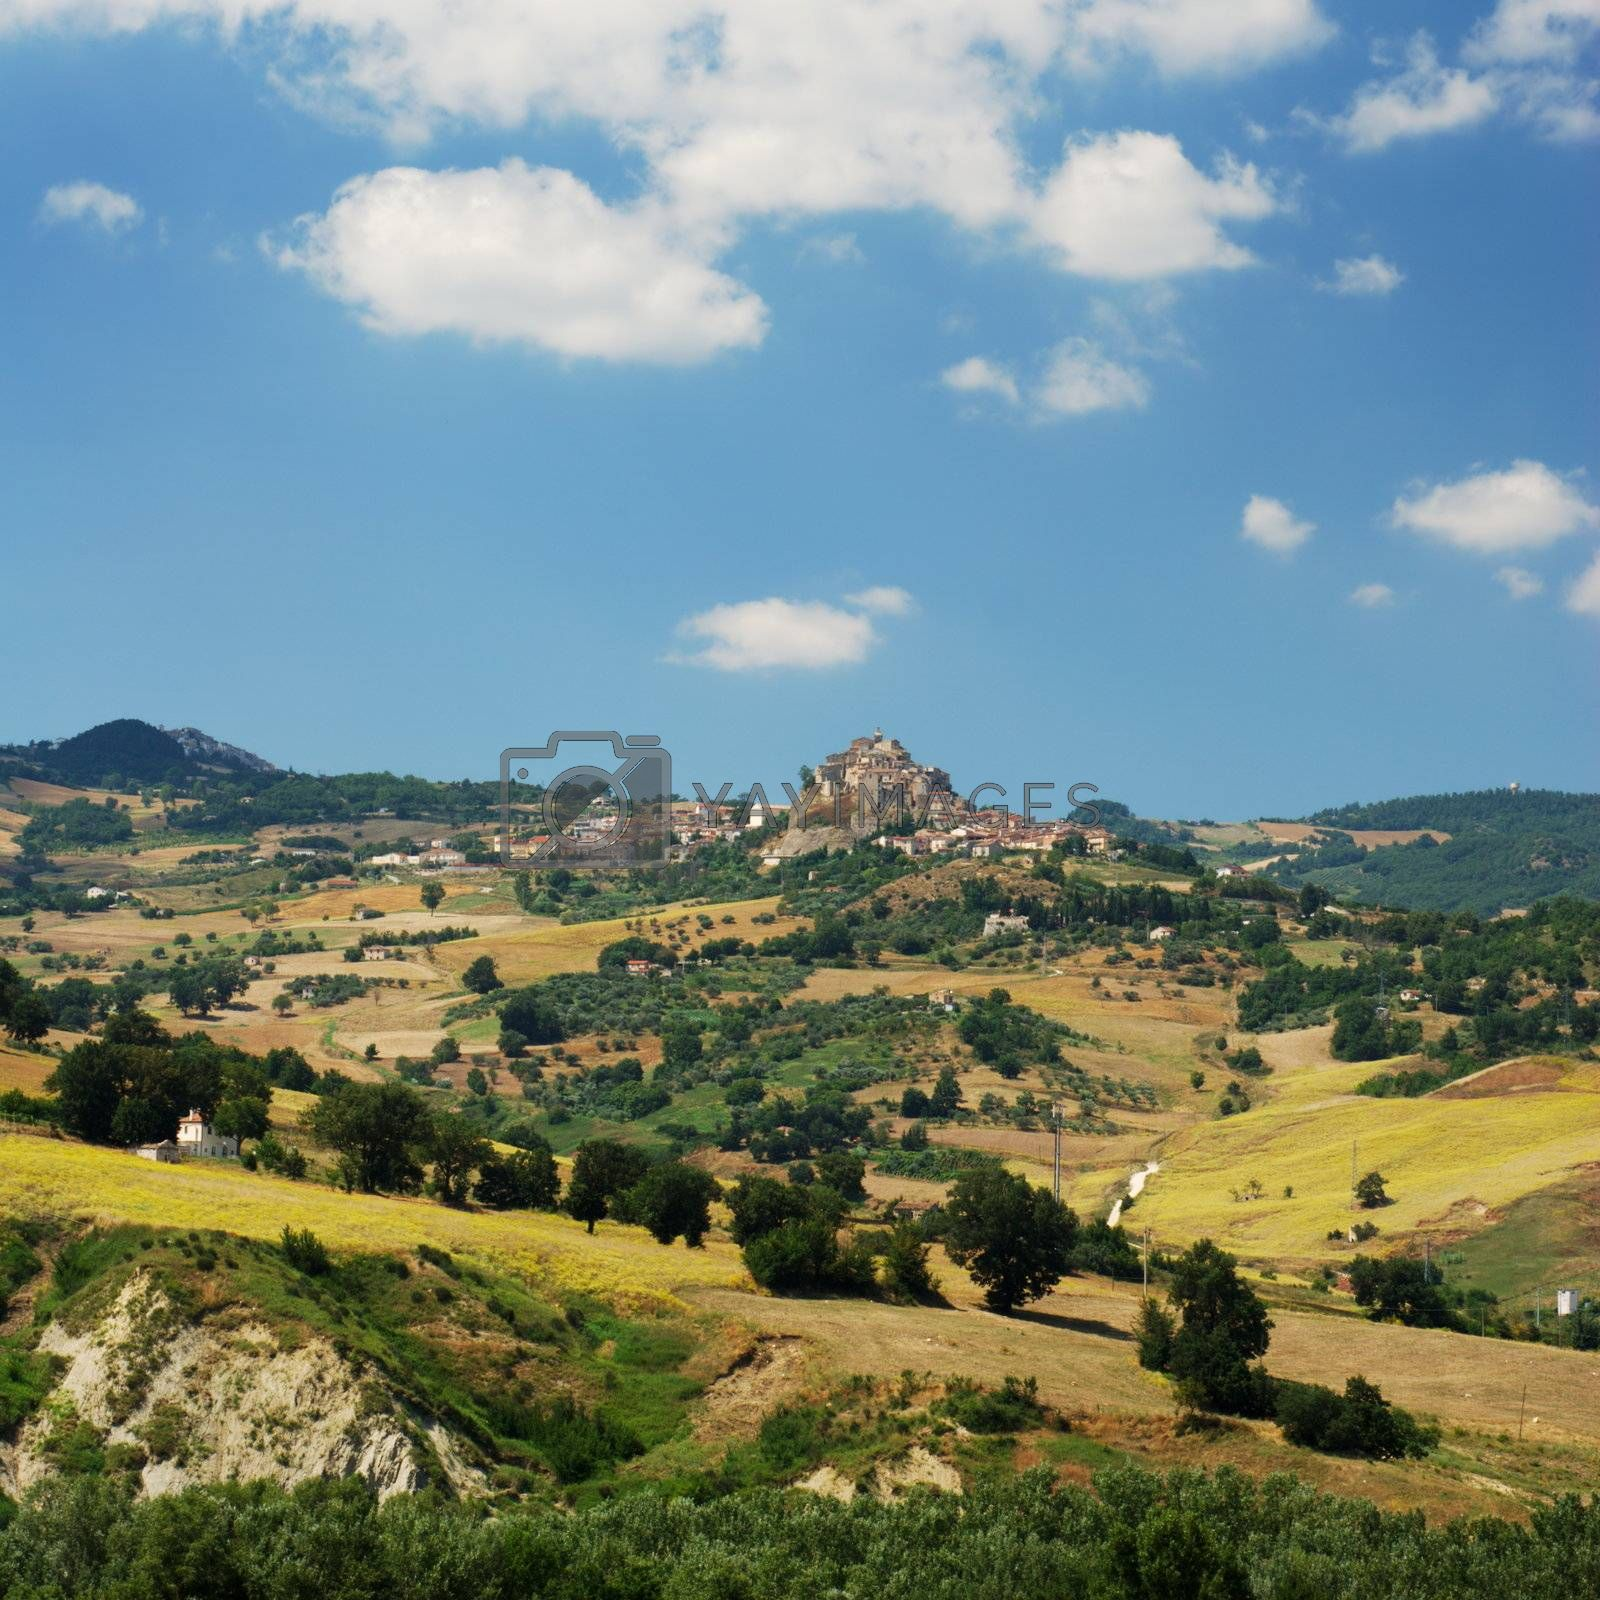 Region Molise in center Italy, the little villages are Ripalimosani and S.Angelo Limosano